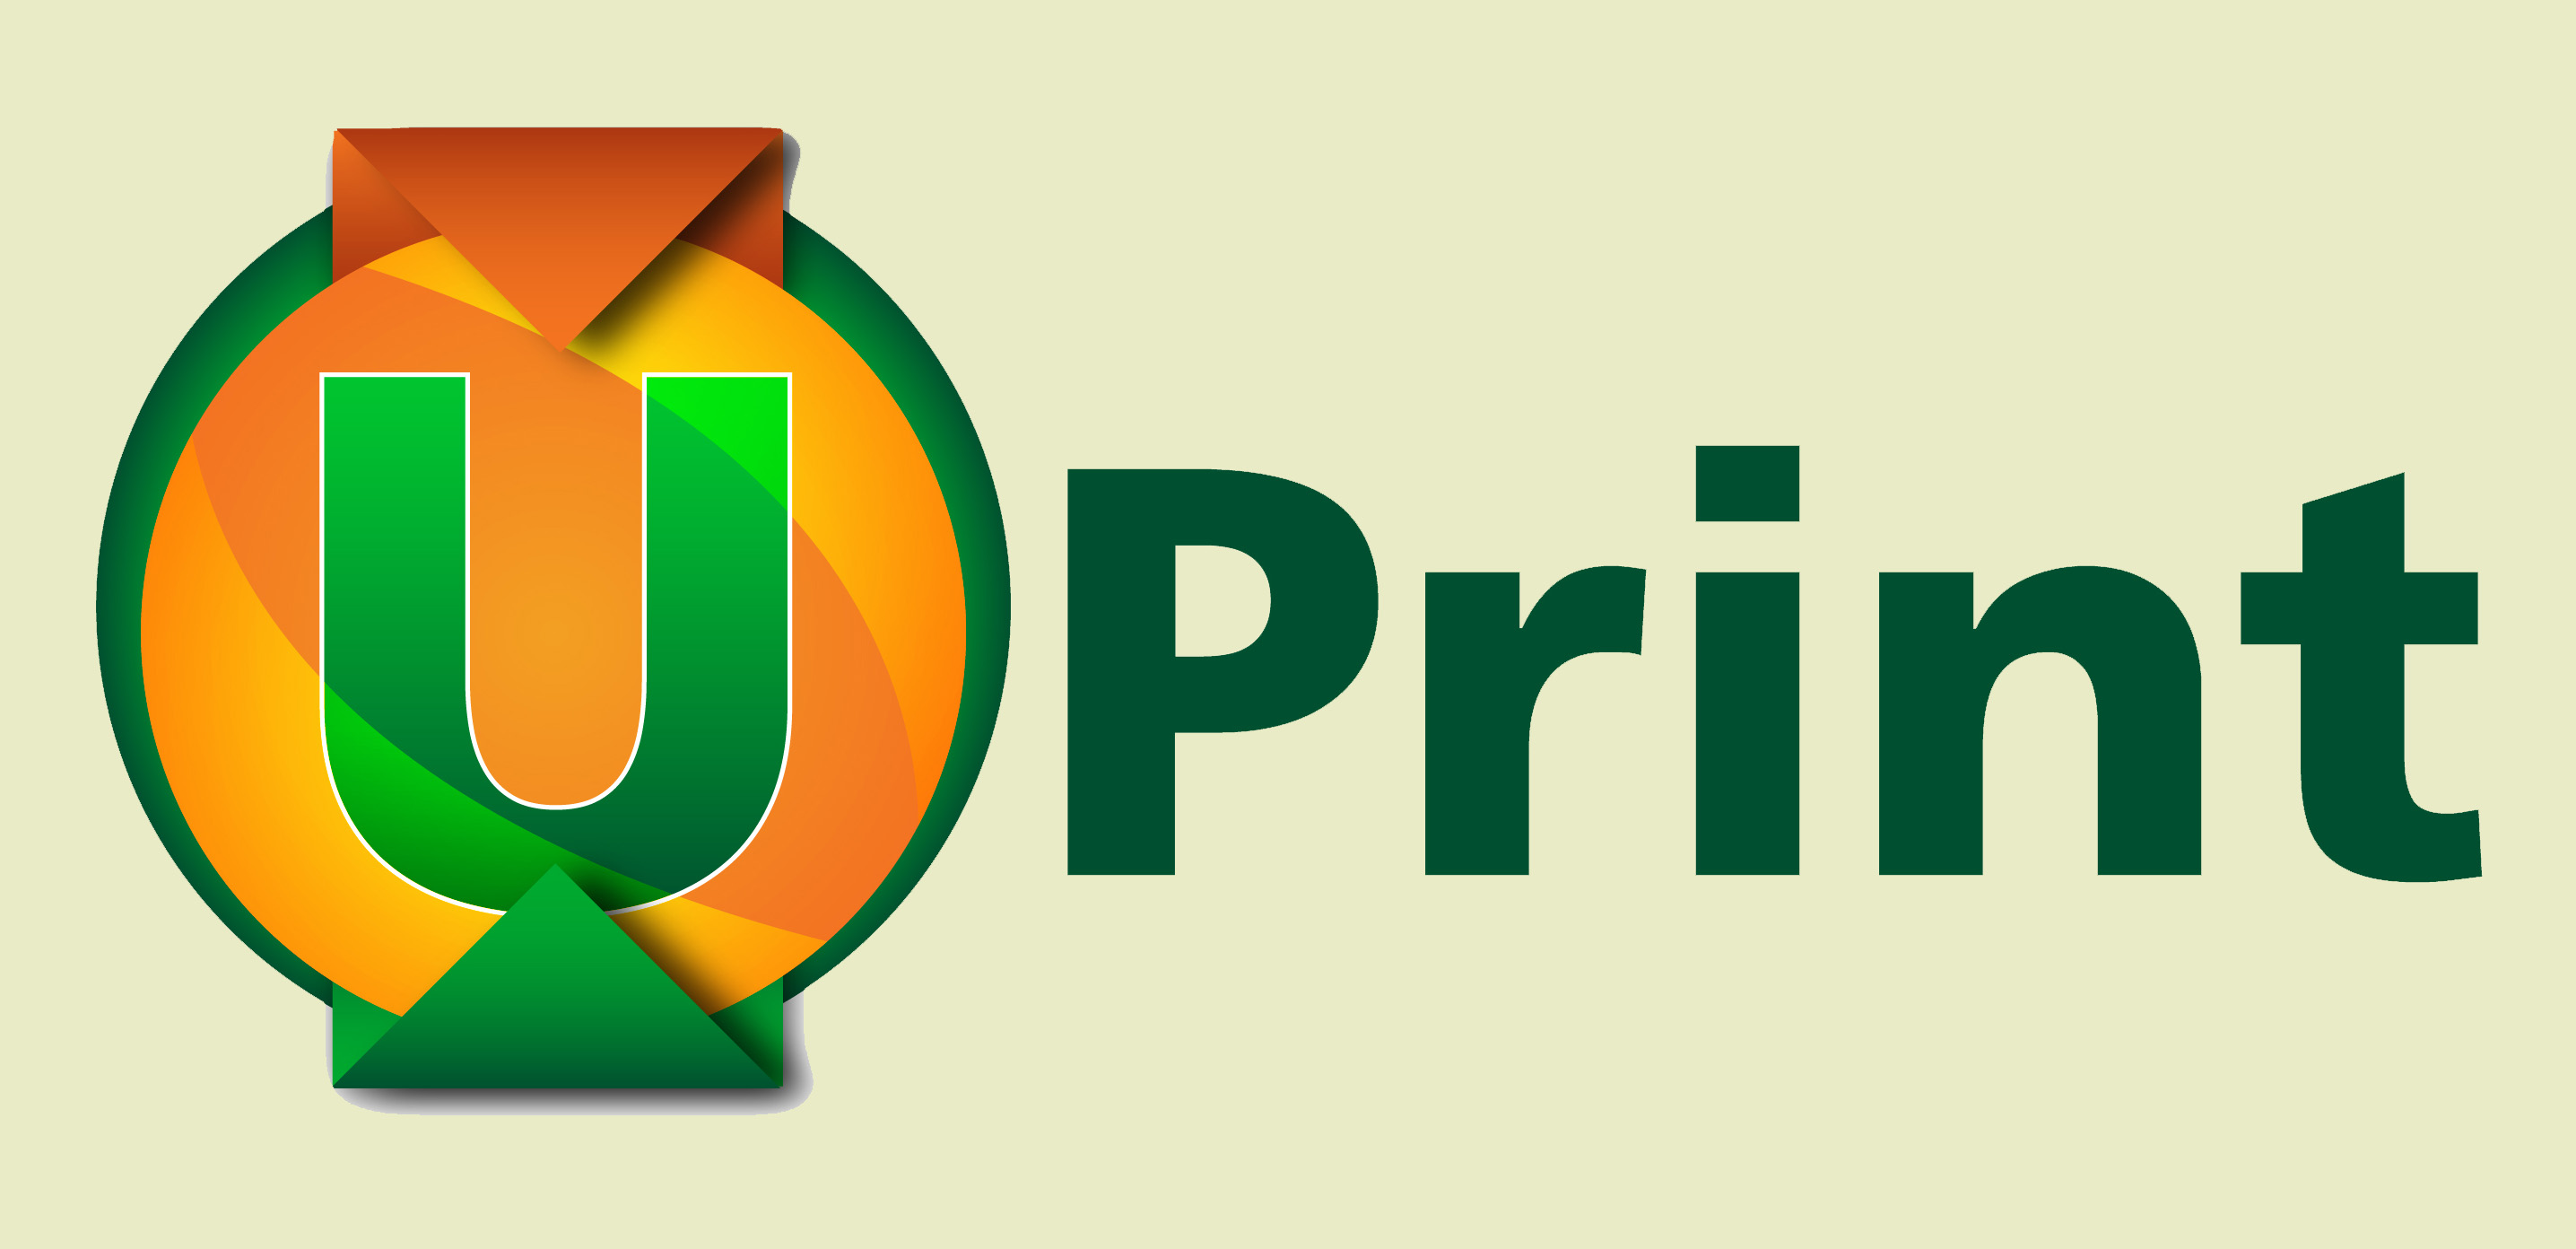 note if you are experiencing difficulty using uprint please contact information technology via the uprint feedback form